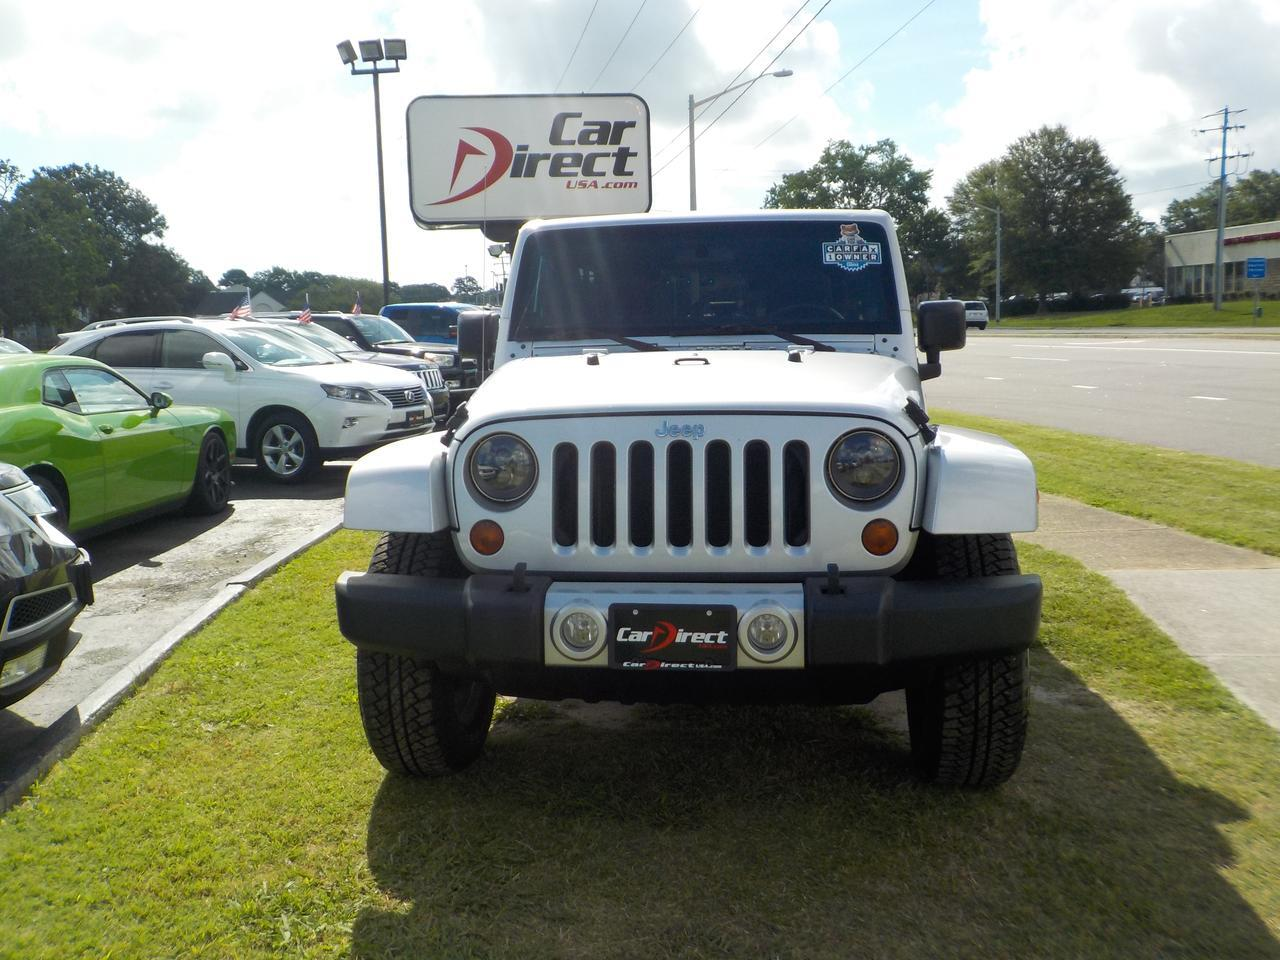 2011 JEEP WRANGLER UNLIMITED 70TH ANNIVERSARY EDITION 4X4, HARD & SOFT TOP, RUNNING BOARDS, REMOTE START, NAVIGATION! Virginia Beach VA